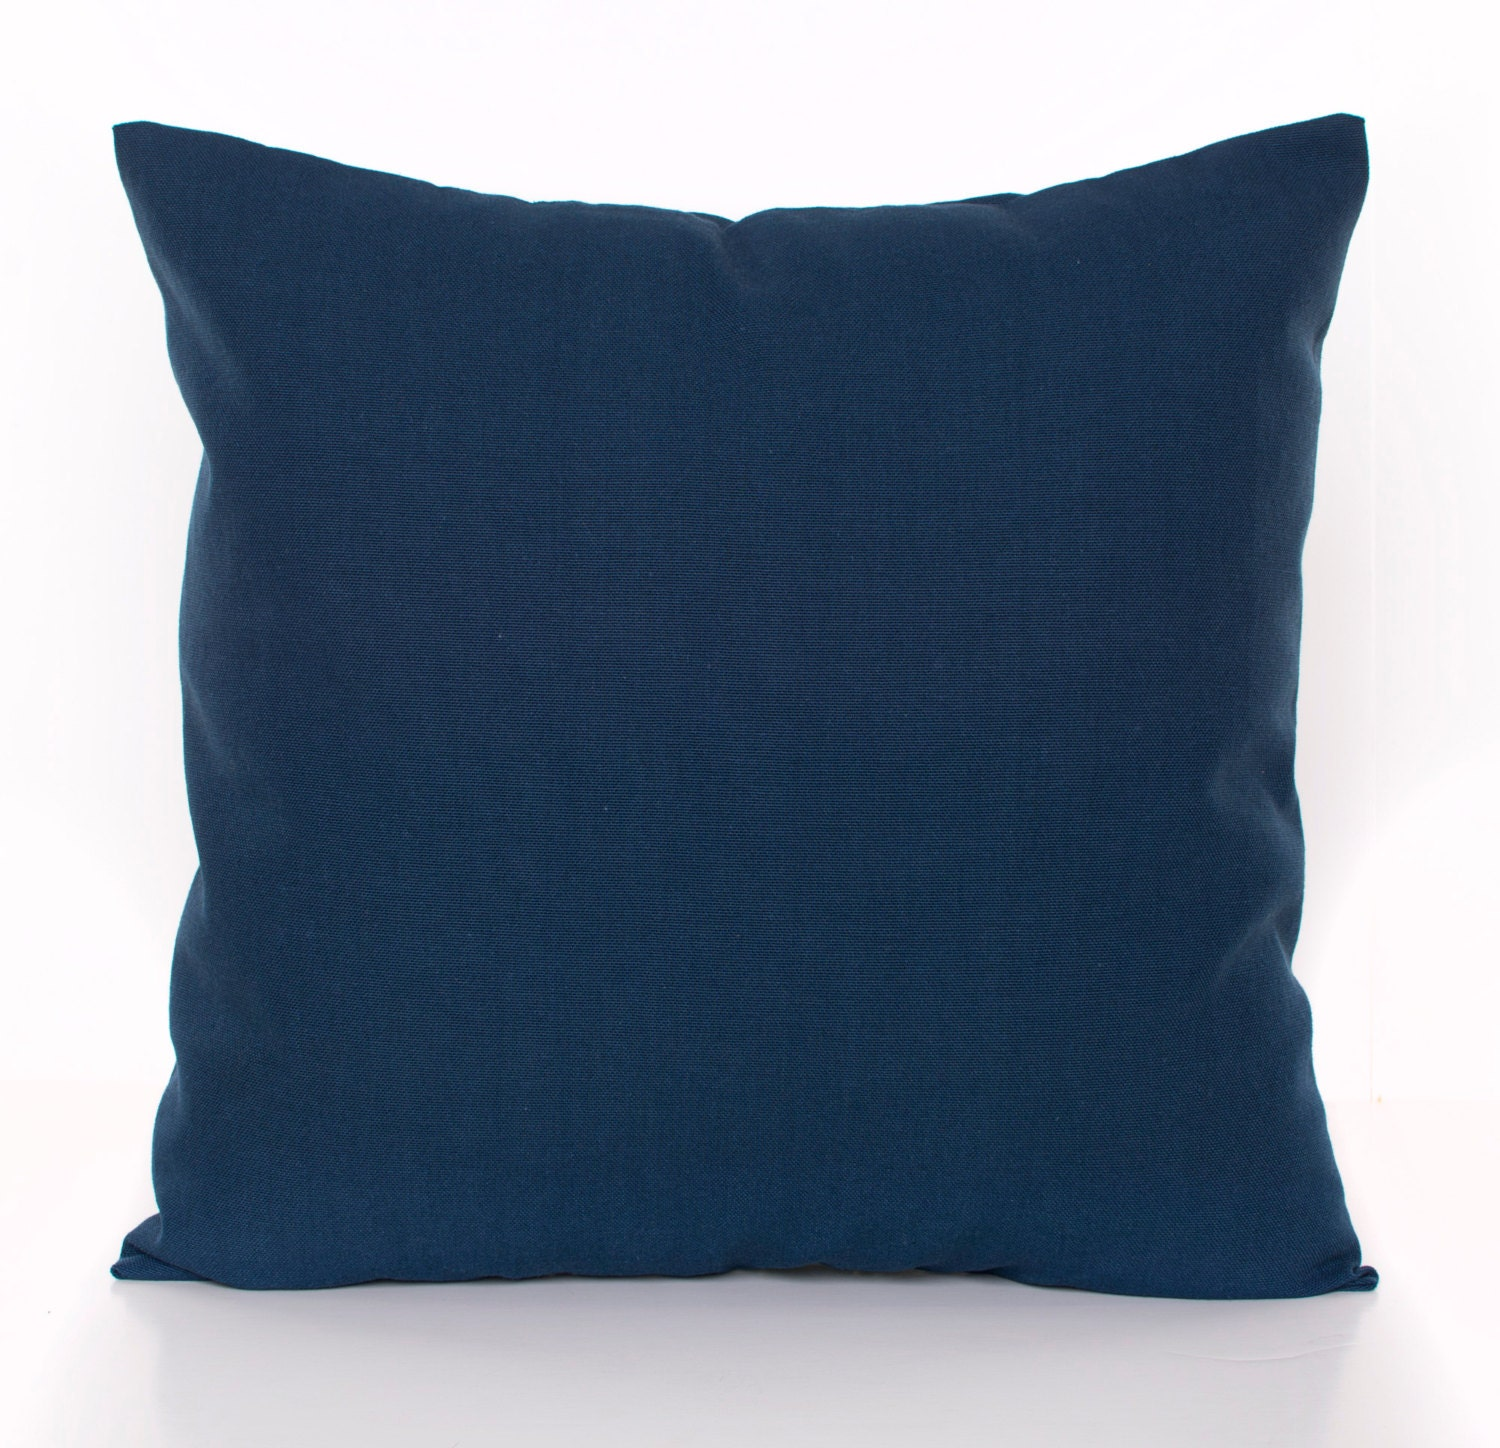 Solid Navy Throw Pillow Cover Navy Pillows Navy Blue Toss